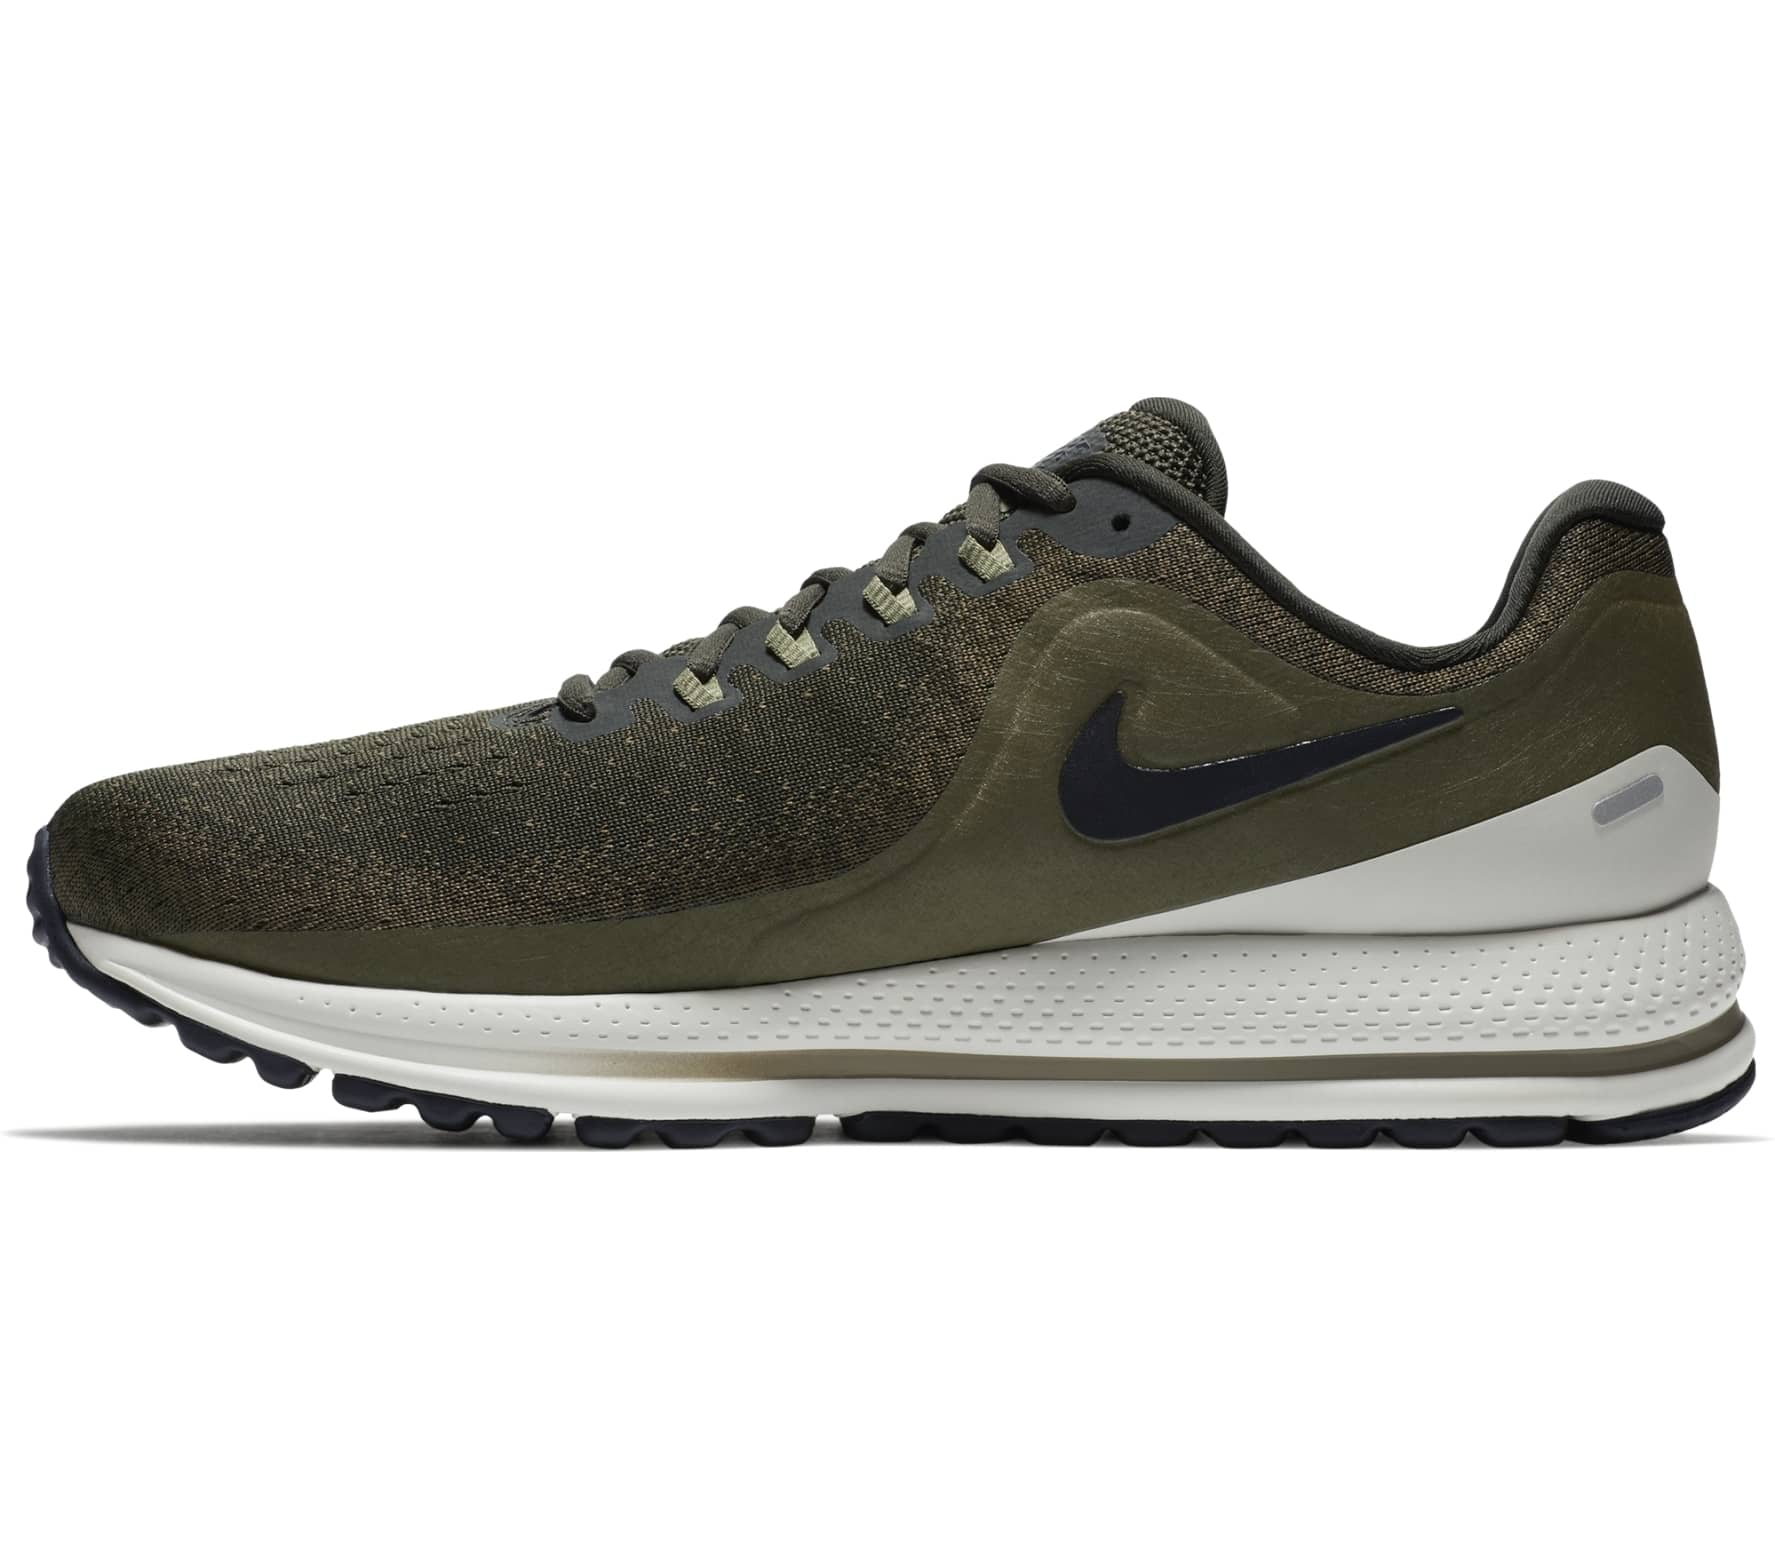 official photos 886b4 bcc84 ... clearance nike air zoom vomero 13 mens running shoes dark green white  efa61 c1a27